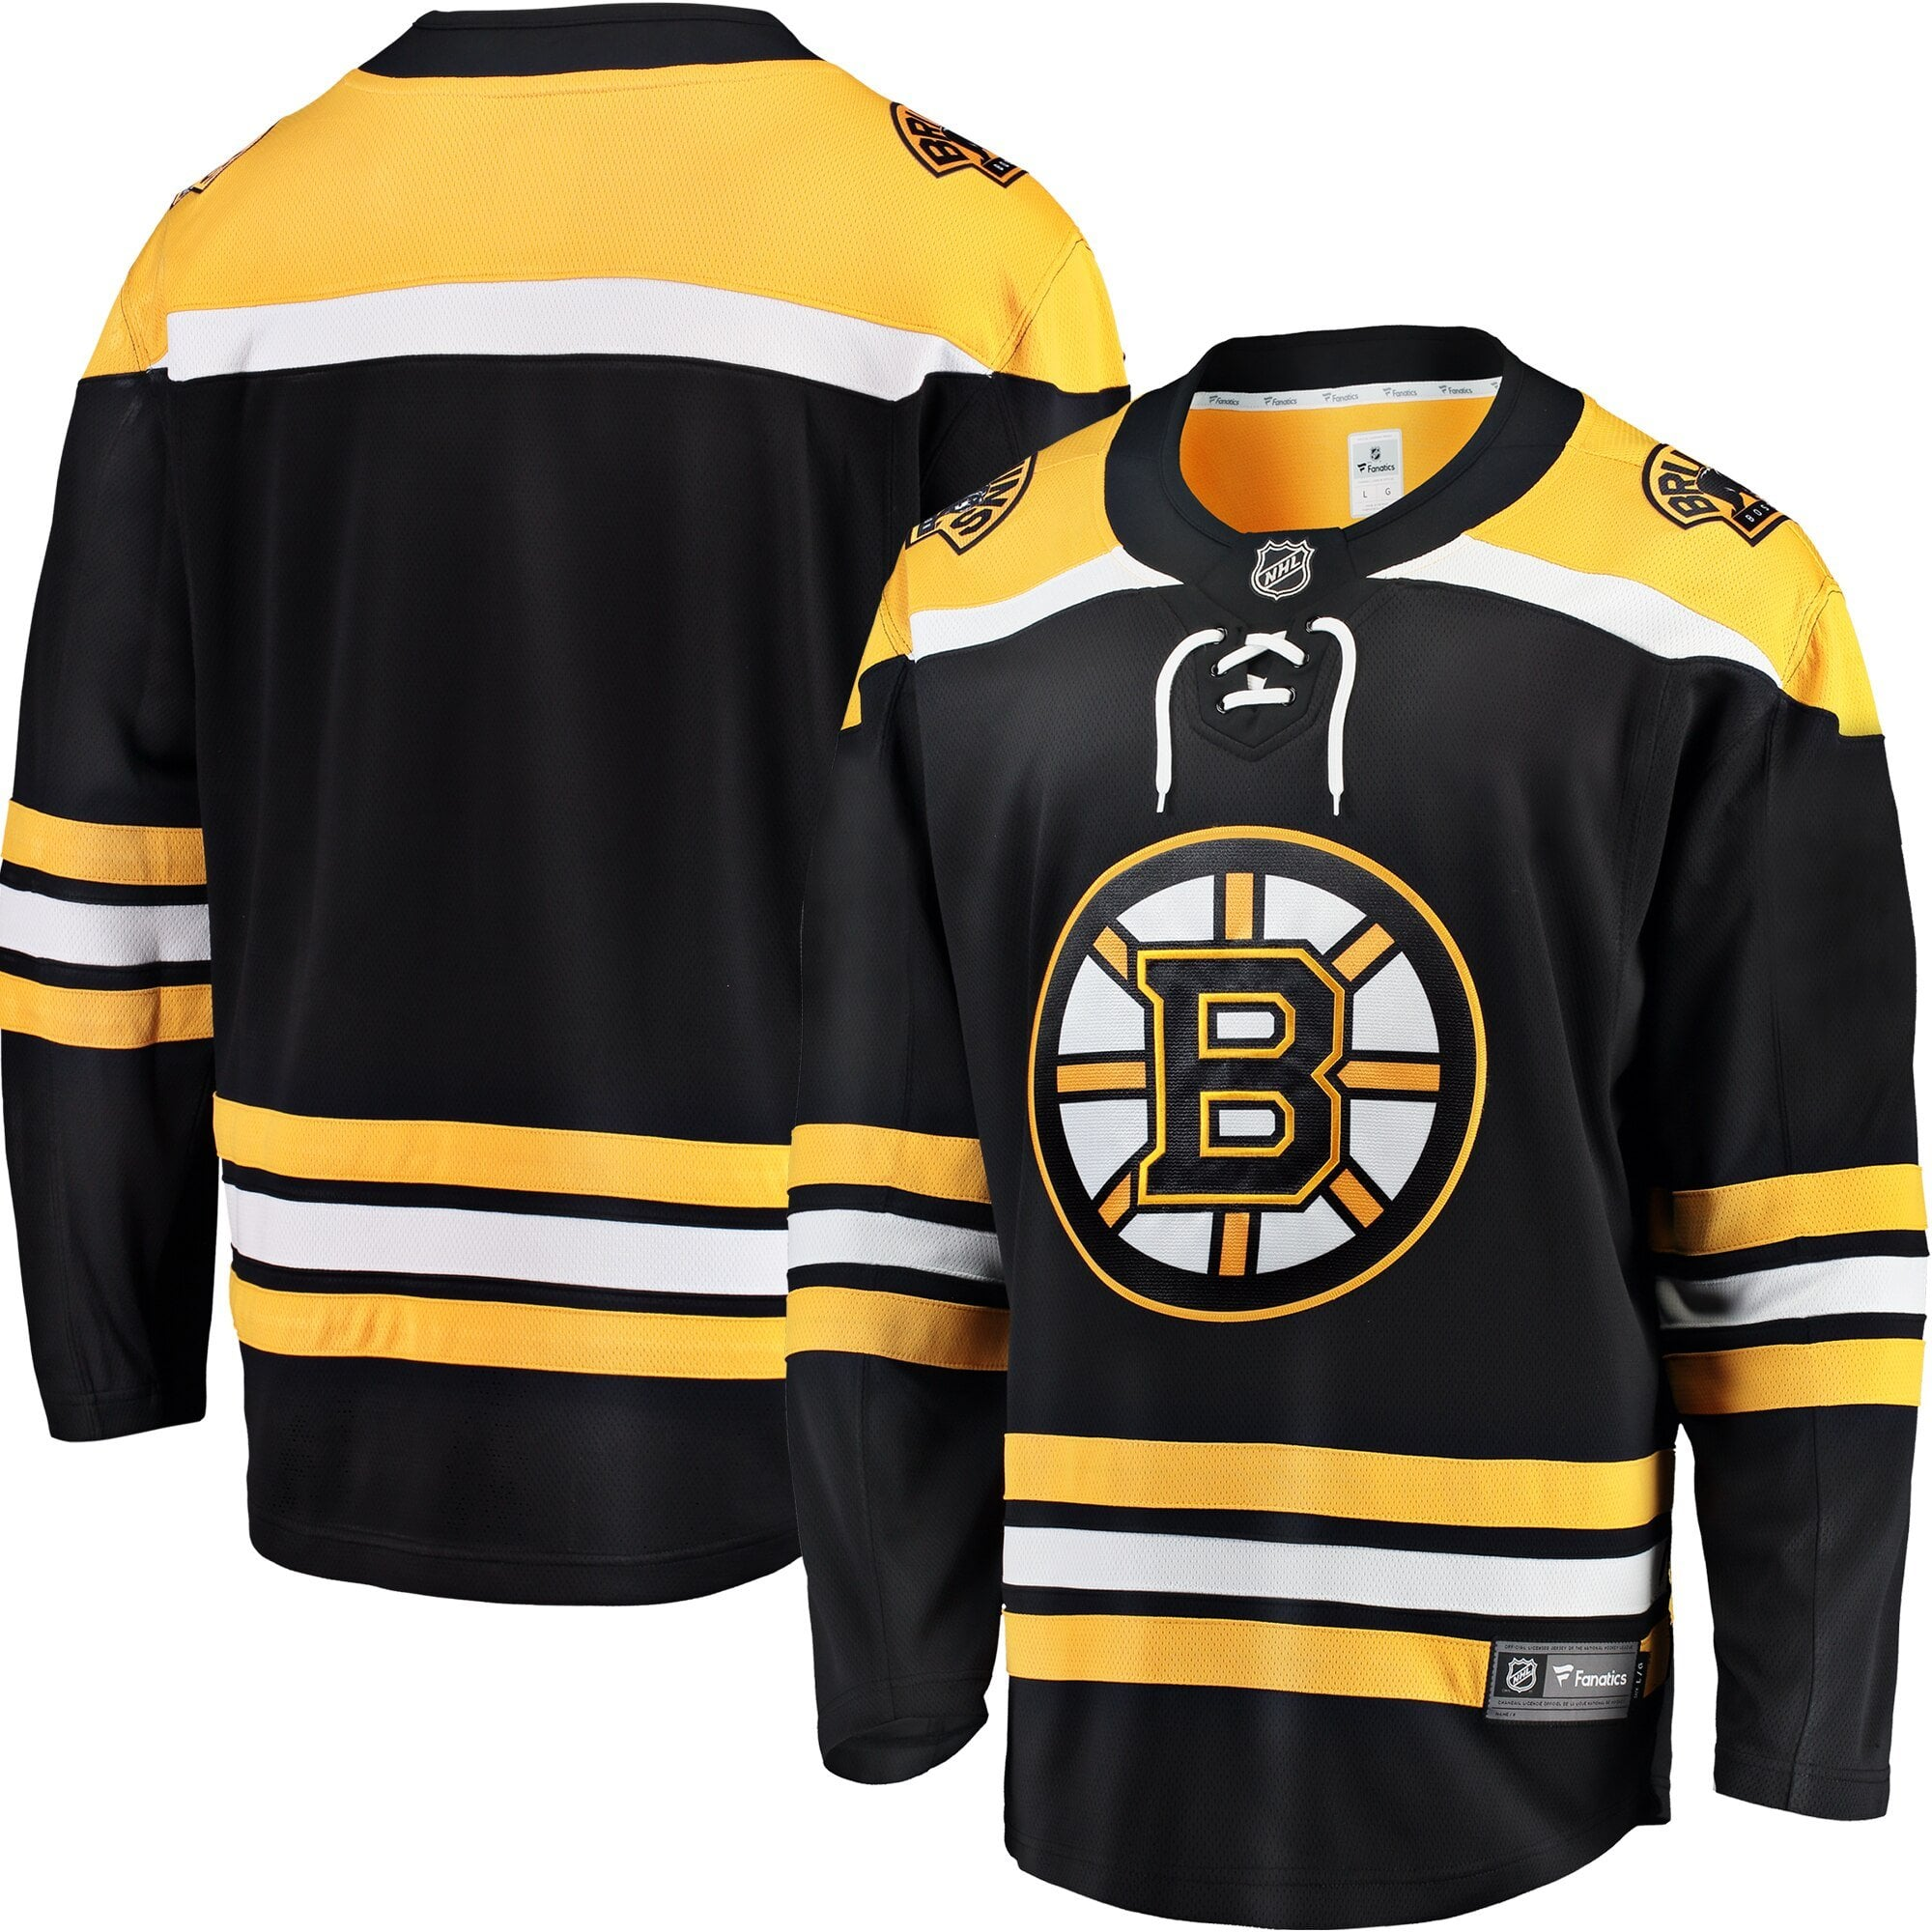 where to buy bruins jersey